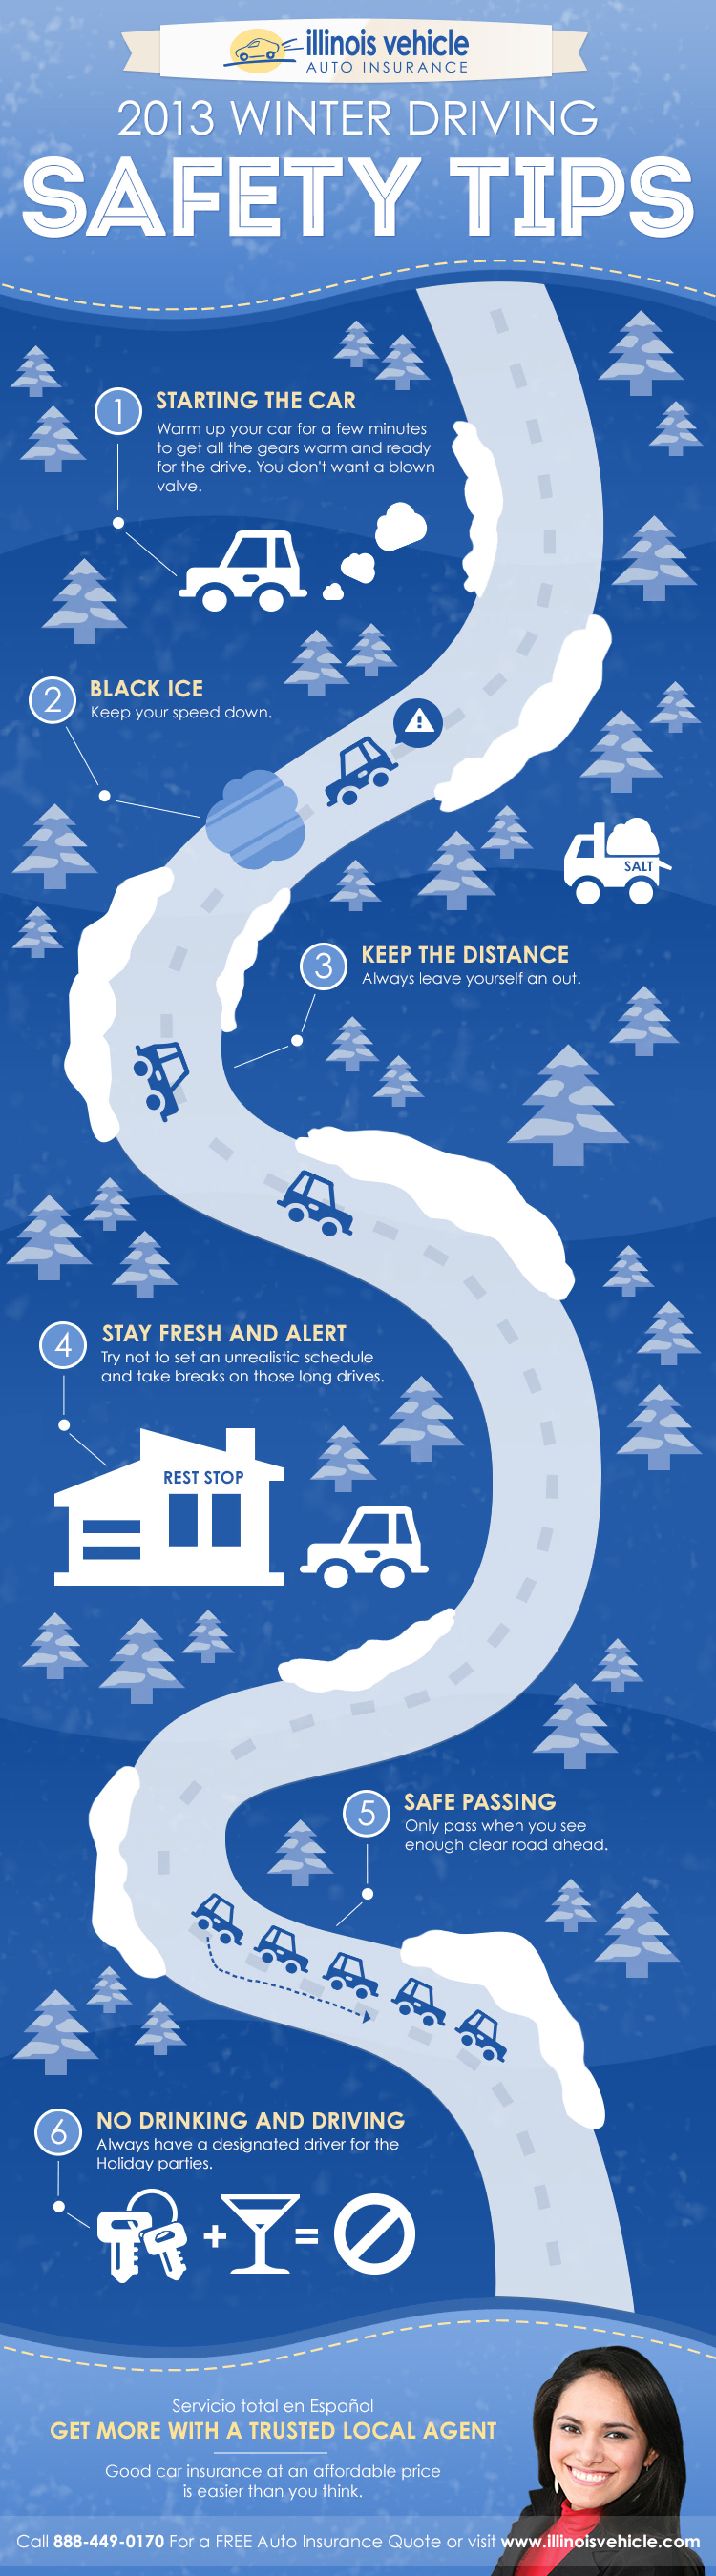 Illinois Vehicle 2013 Winter Driving Safety Tips Infographic